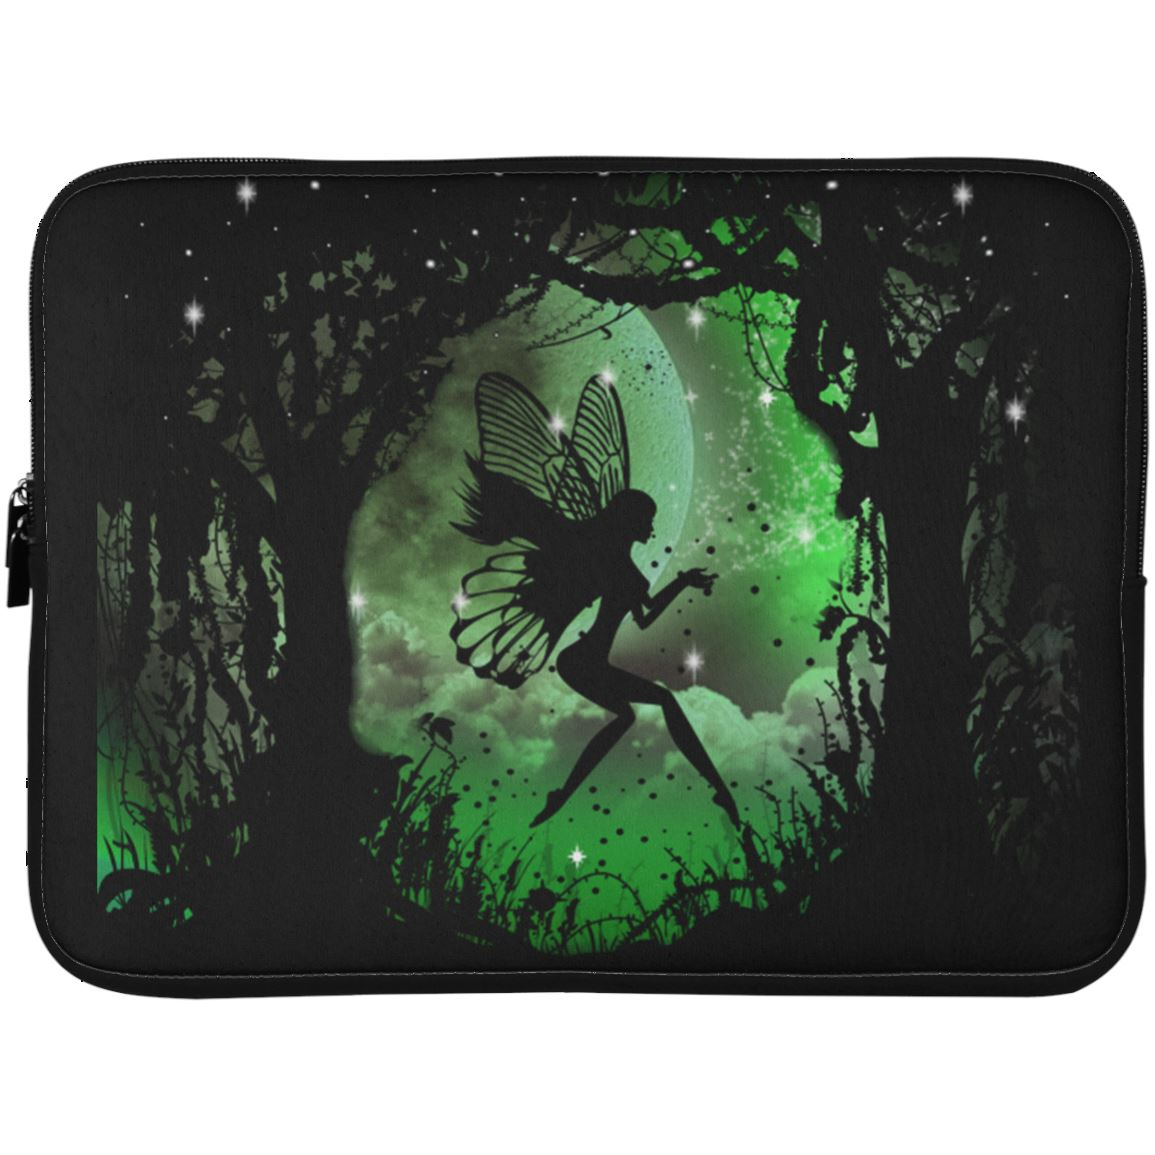 Fairy Laptop Sleeve Apparel Laptop Sleeve - 15 Inch Black One Size